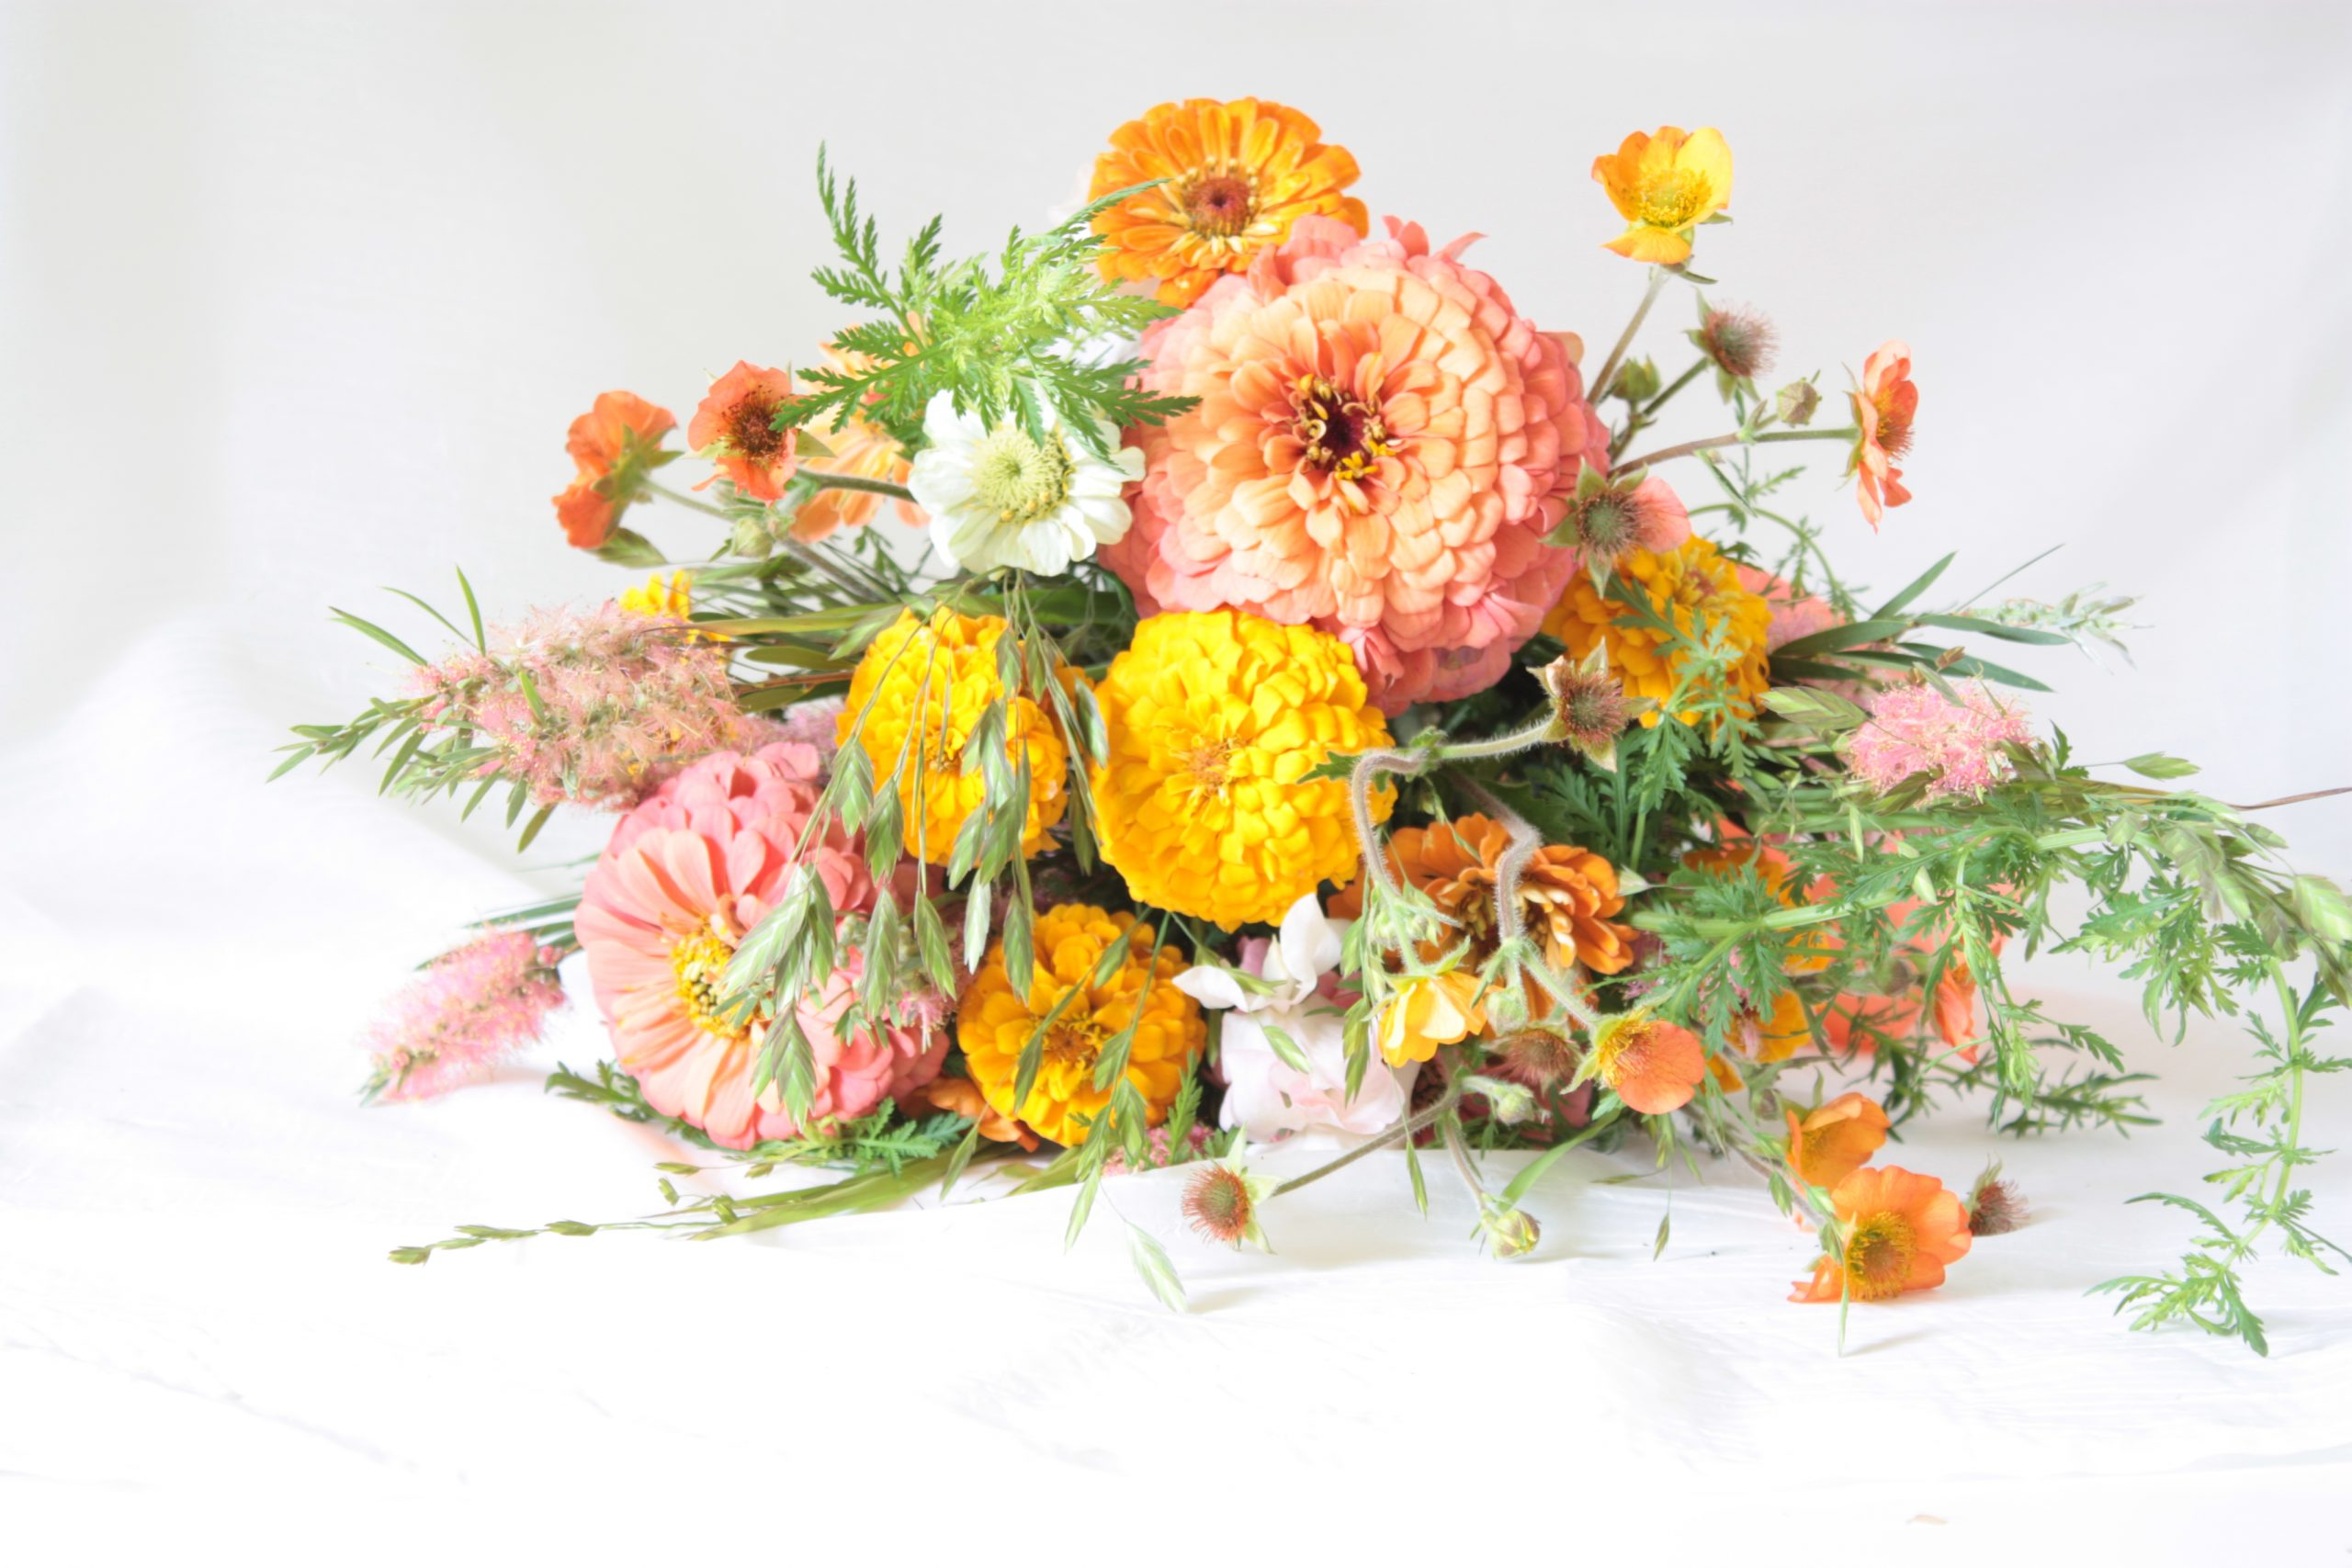 a bouquet of zinnias in peach, yellow, orange, and salmon colors, with goliage, grasses, and geum